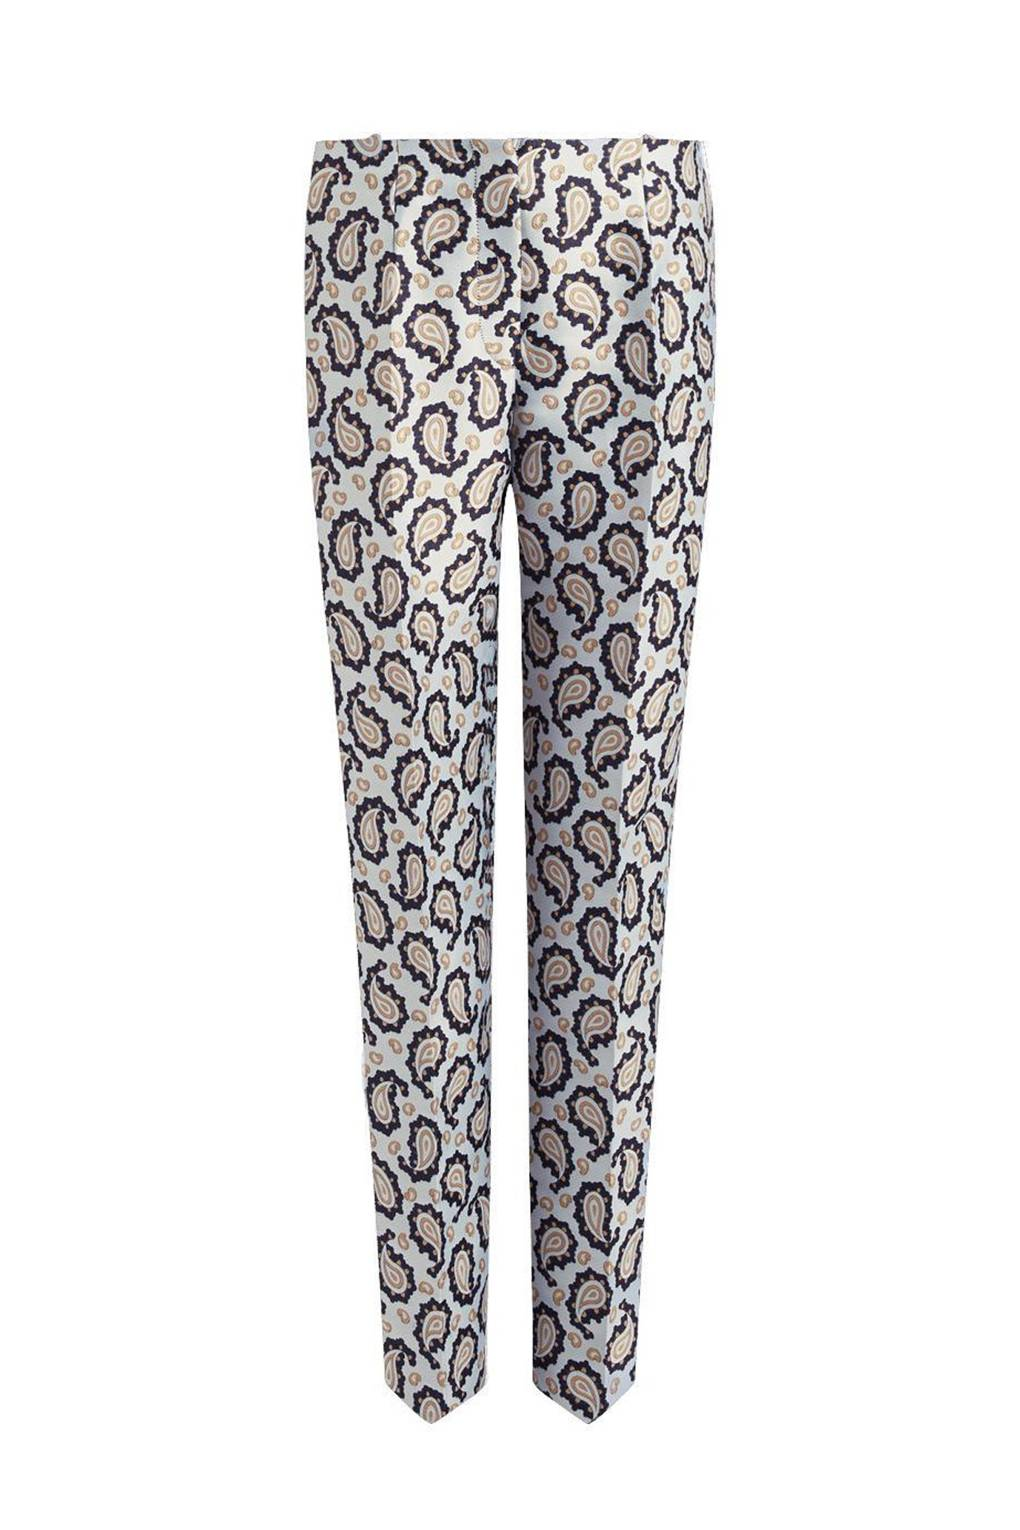 681d53ece81ac Top 10 printed & patterned trousers - Spring/Summer 2015 | British Vogue